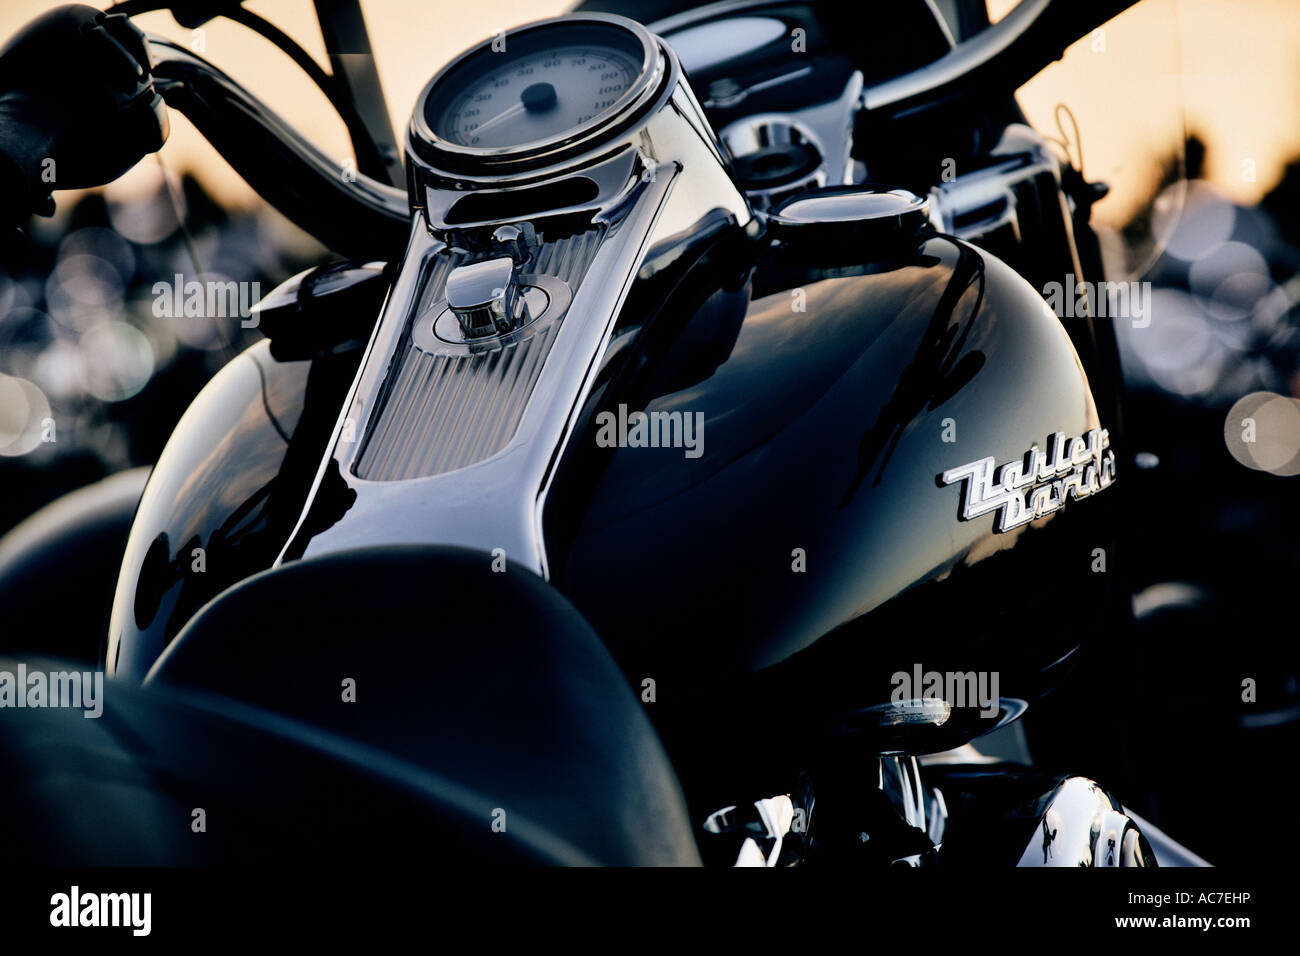 harley davidson motorcycle showing close up of fuel tank and stock photo 13066353 alamy. Black Bedroom Furniture Sets. Home Design Ideas